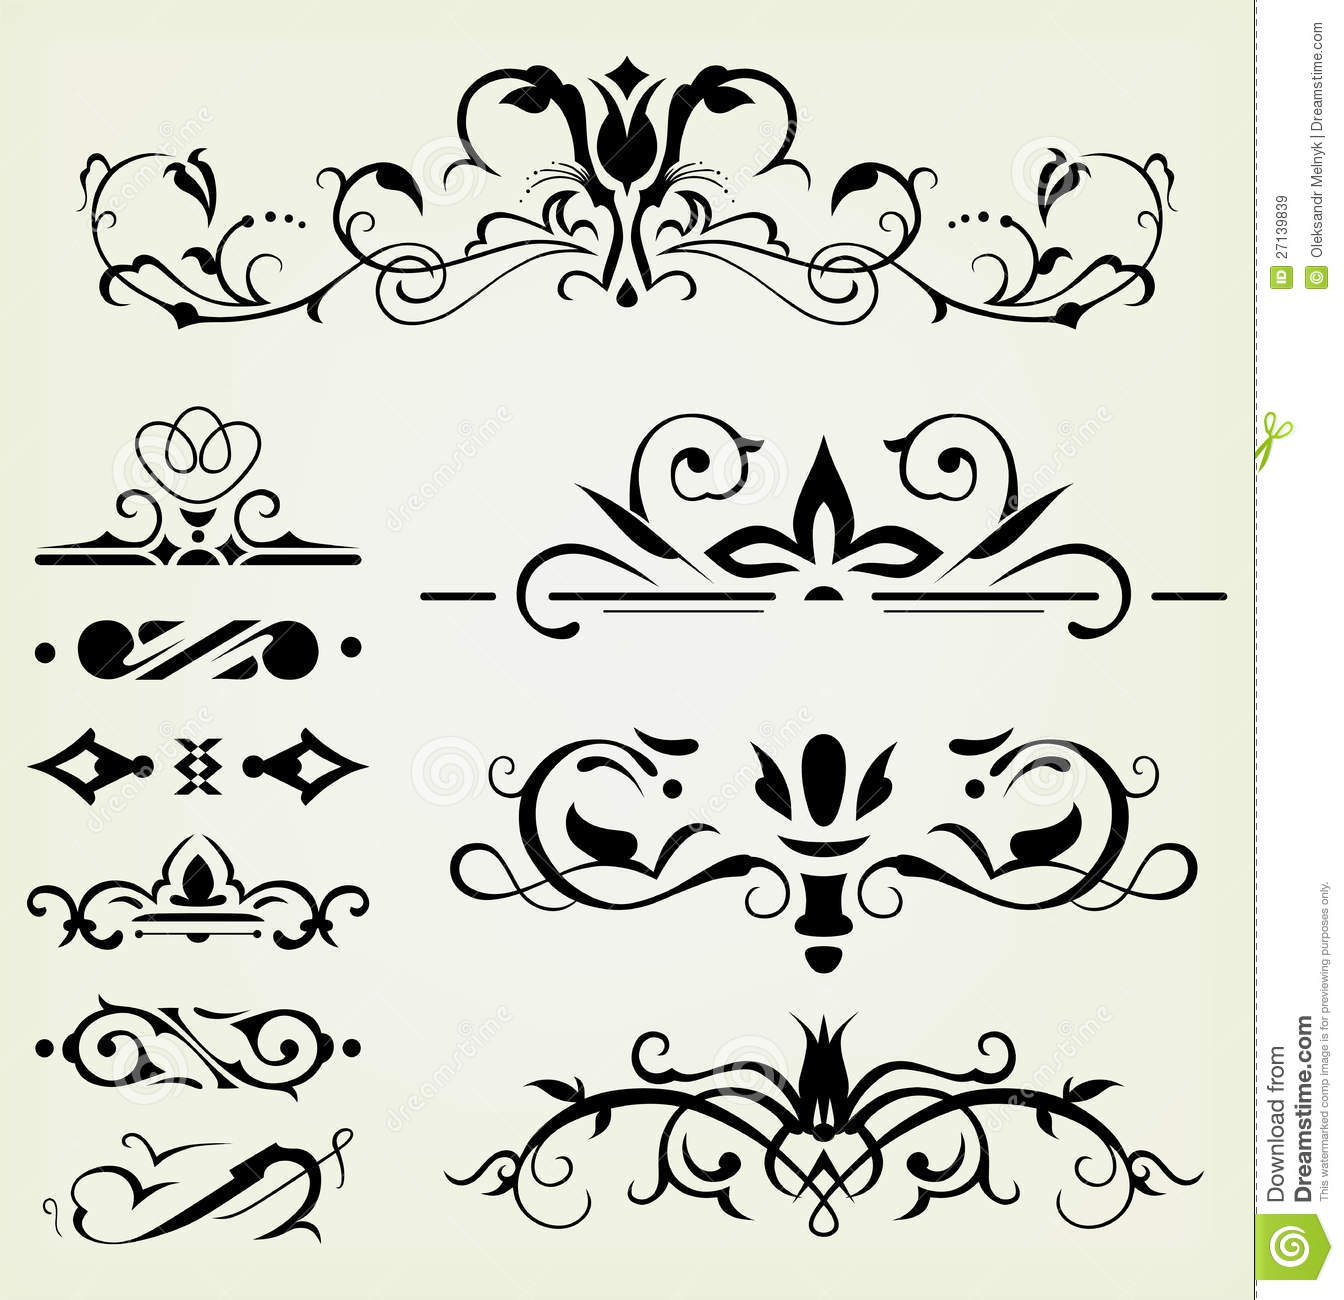 Calligraphic design elements royalty free stock images - Design elementi ...